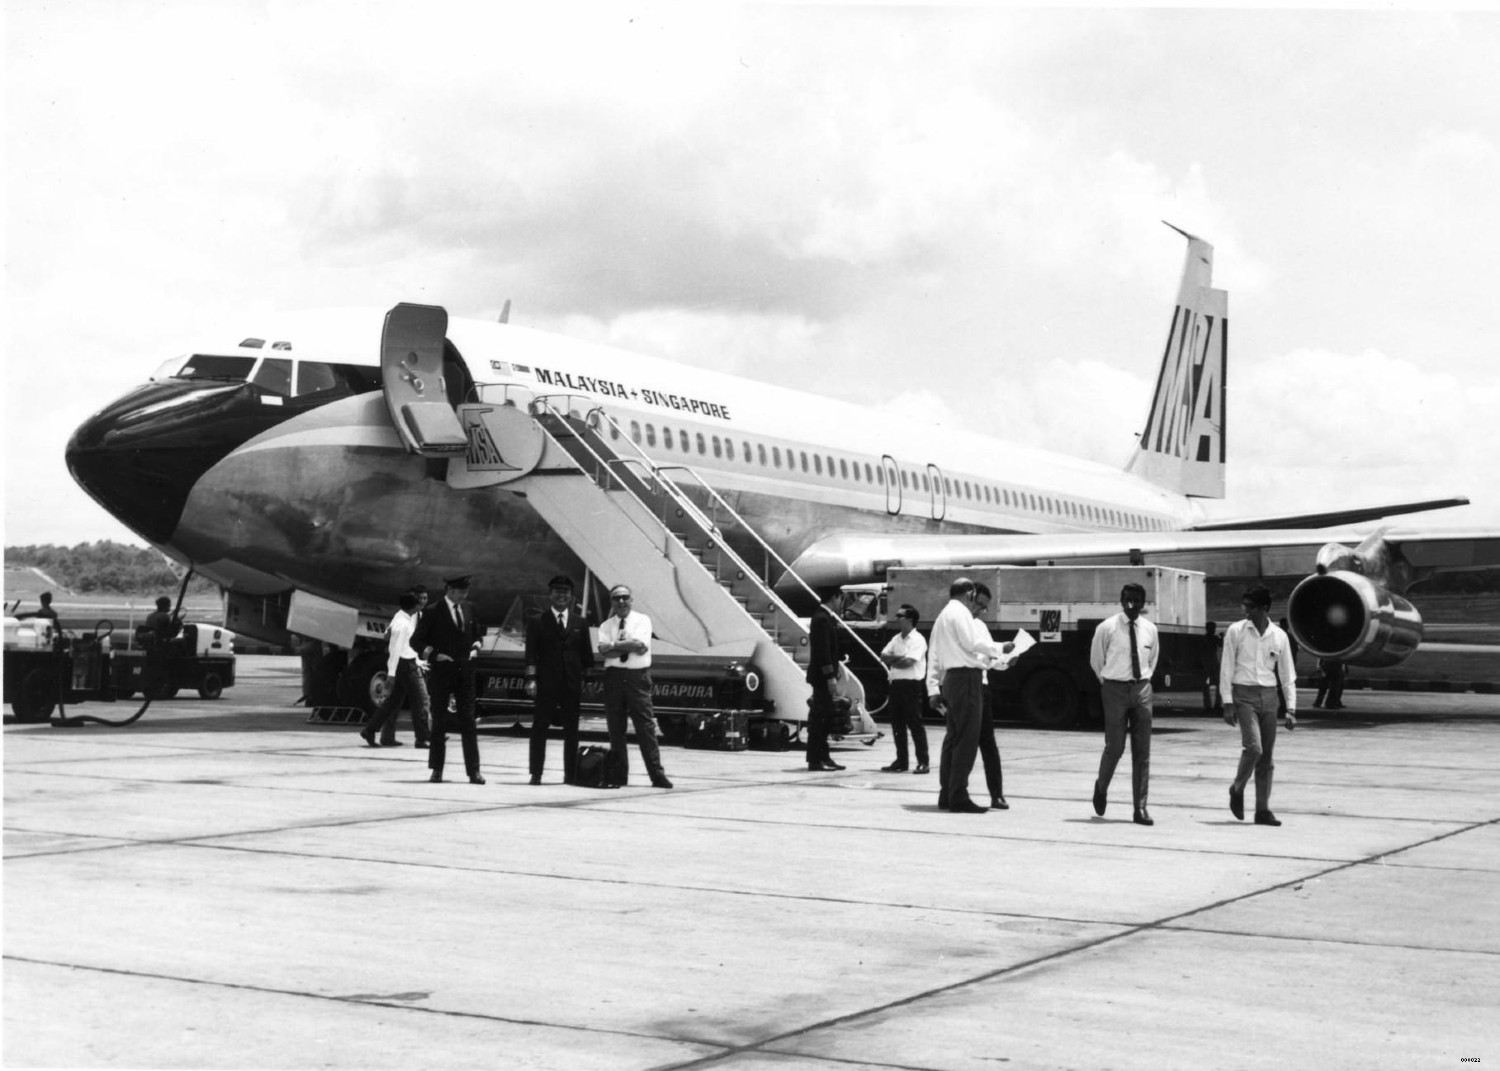 A Look at Singapore Airlines' Milestones